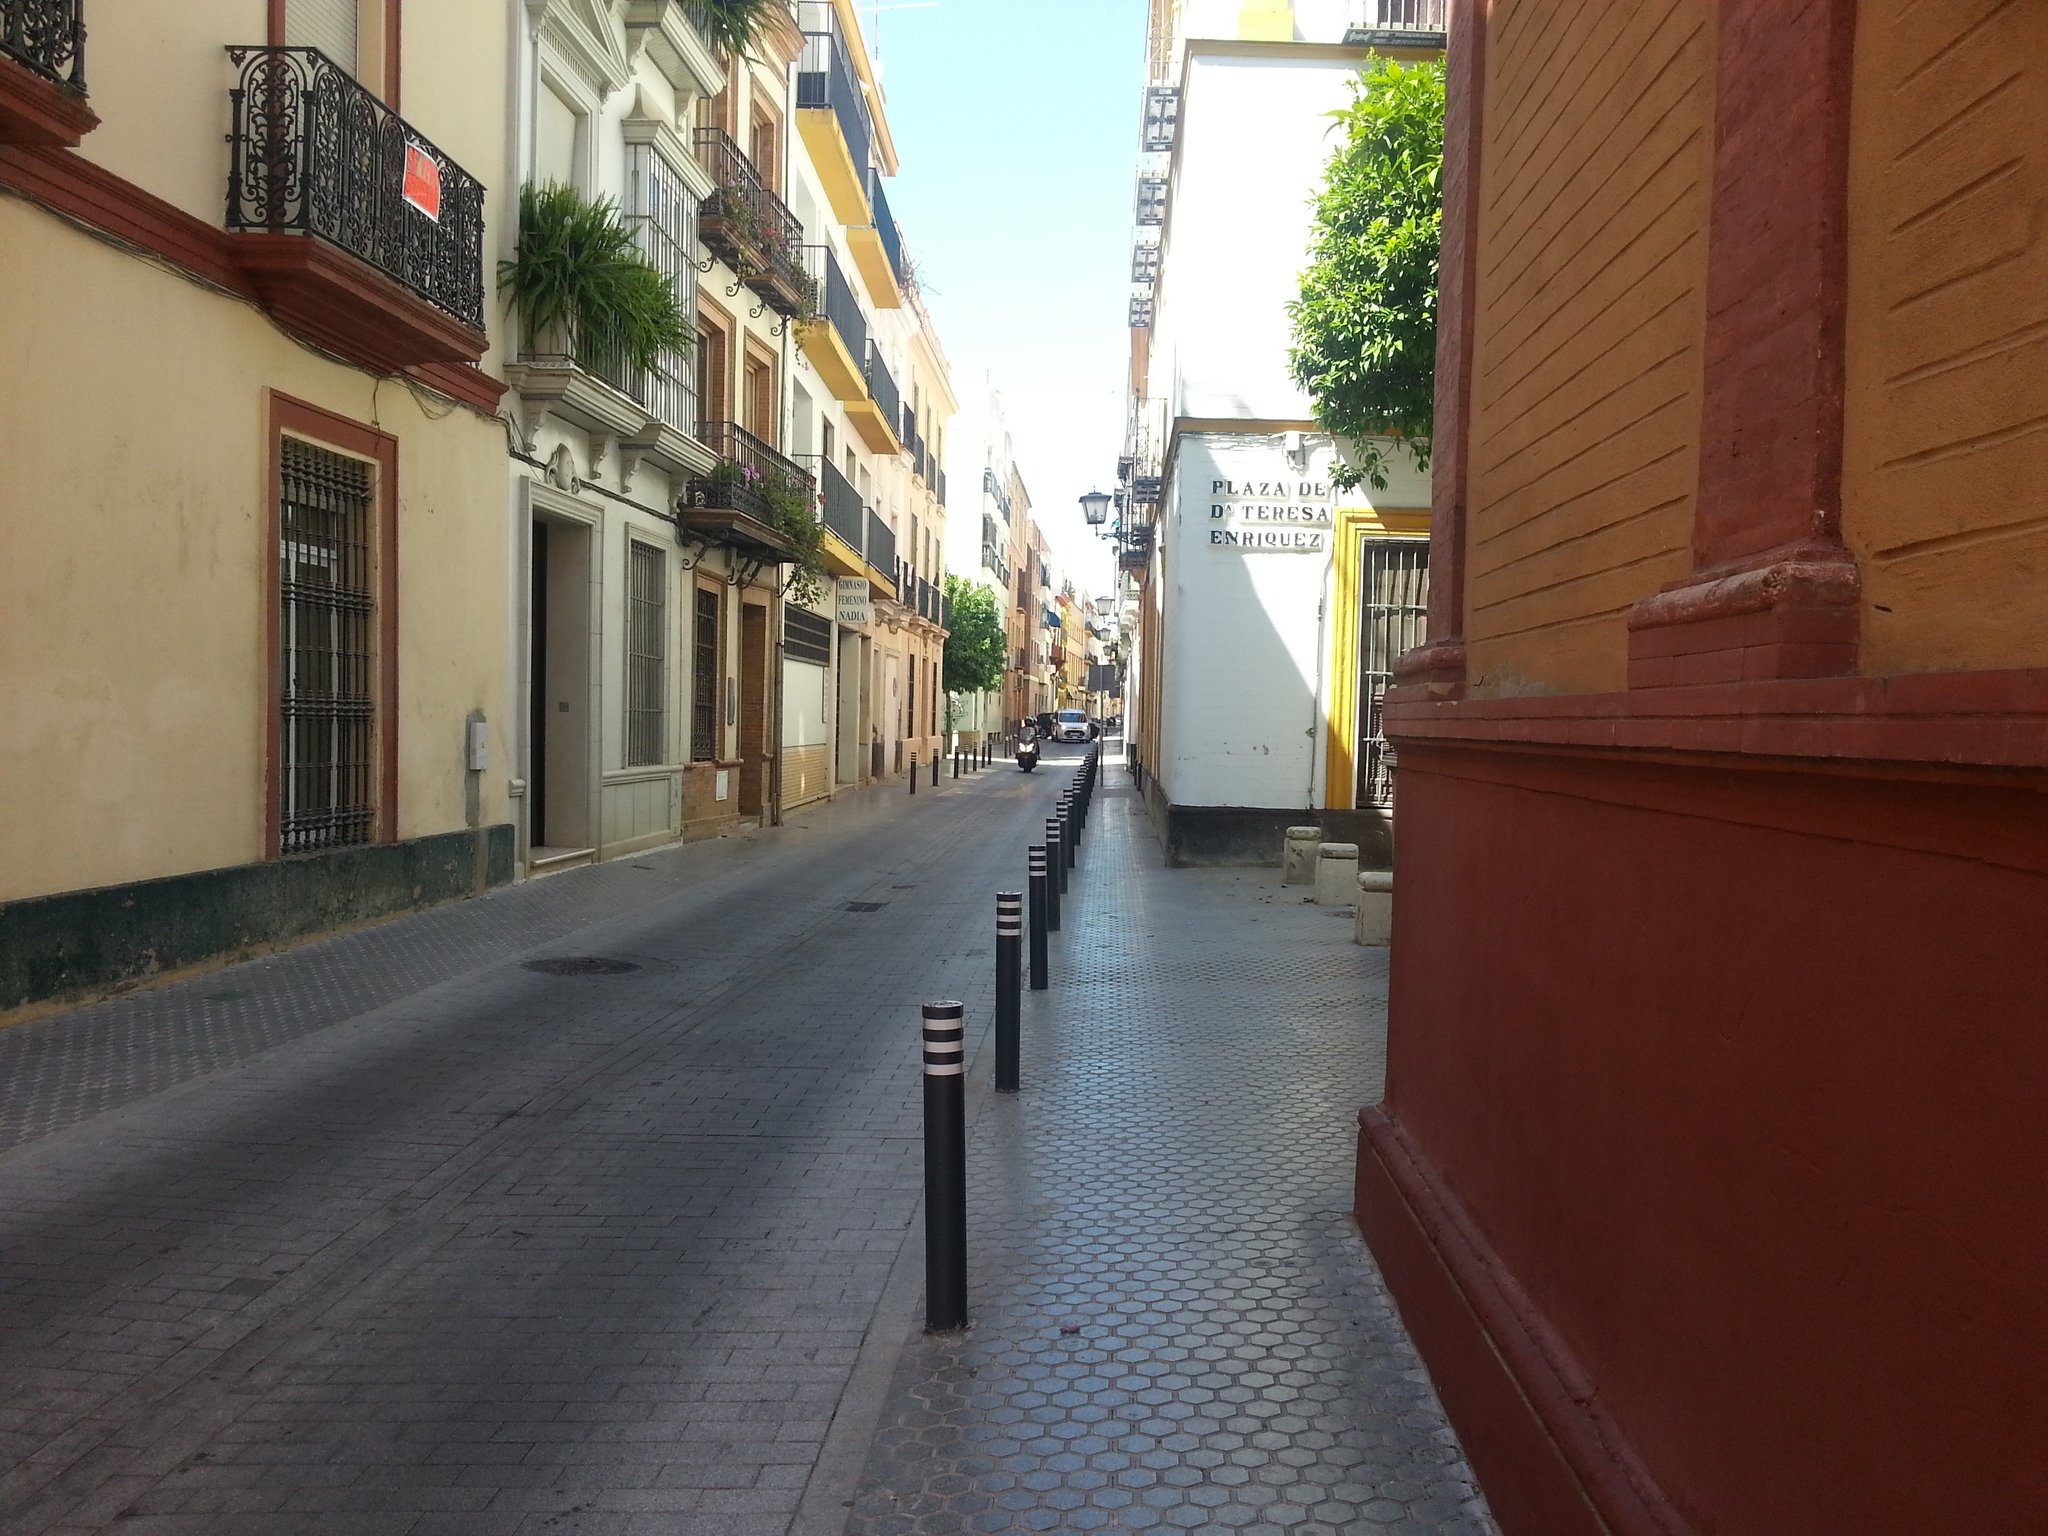 they do love a bollard in Seville. One way to stop pavement parking https://t.co/rShNcKHy36